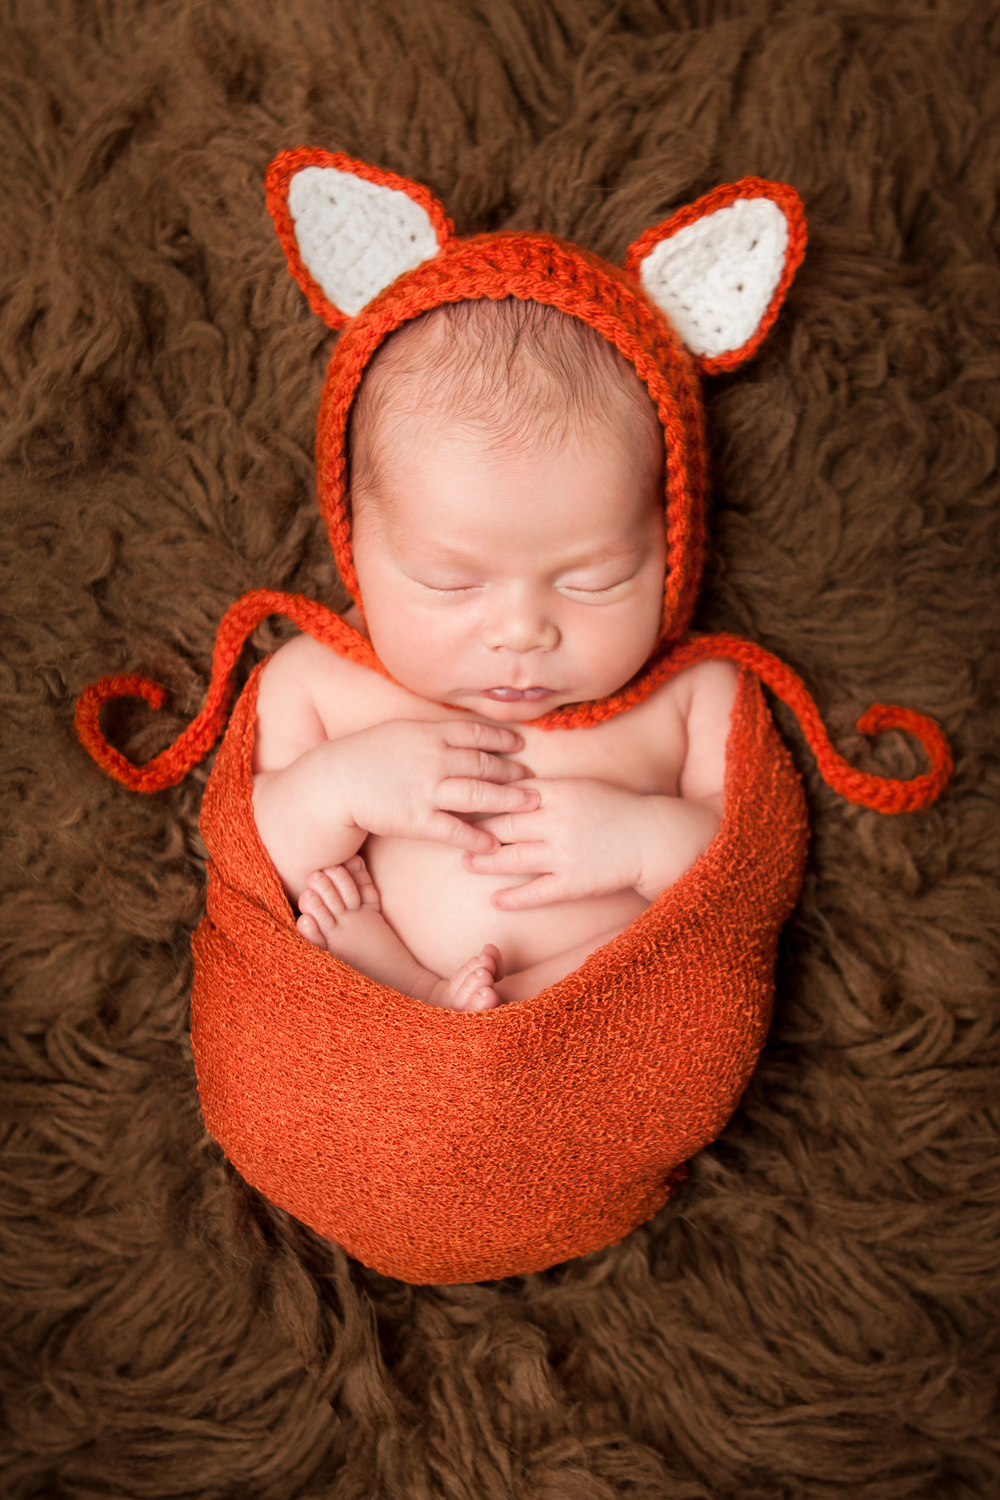 Newborn baby boy chubby orange crochet fox bonnet, orange stretch knit wrap on brown flokati rug, Westchester County, New York newborn photographer, Amanda Noelle Photography.